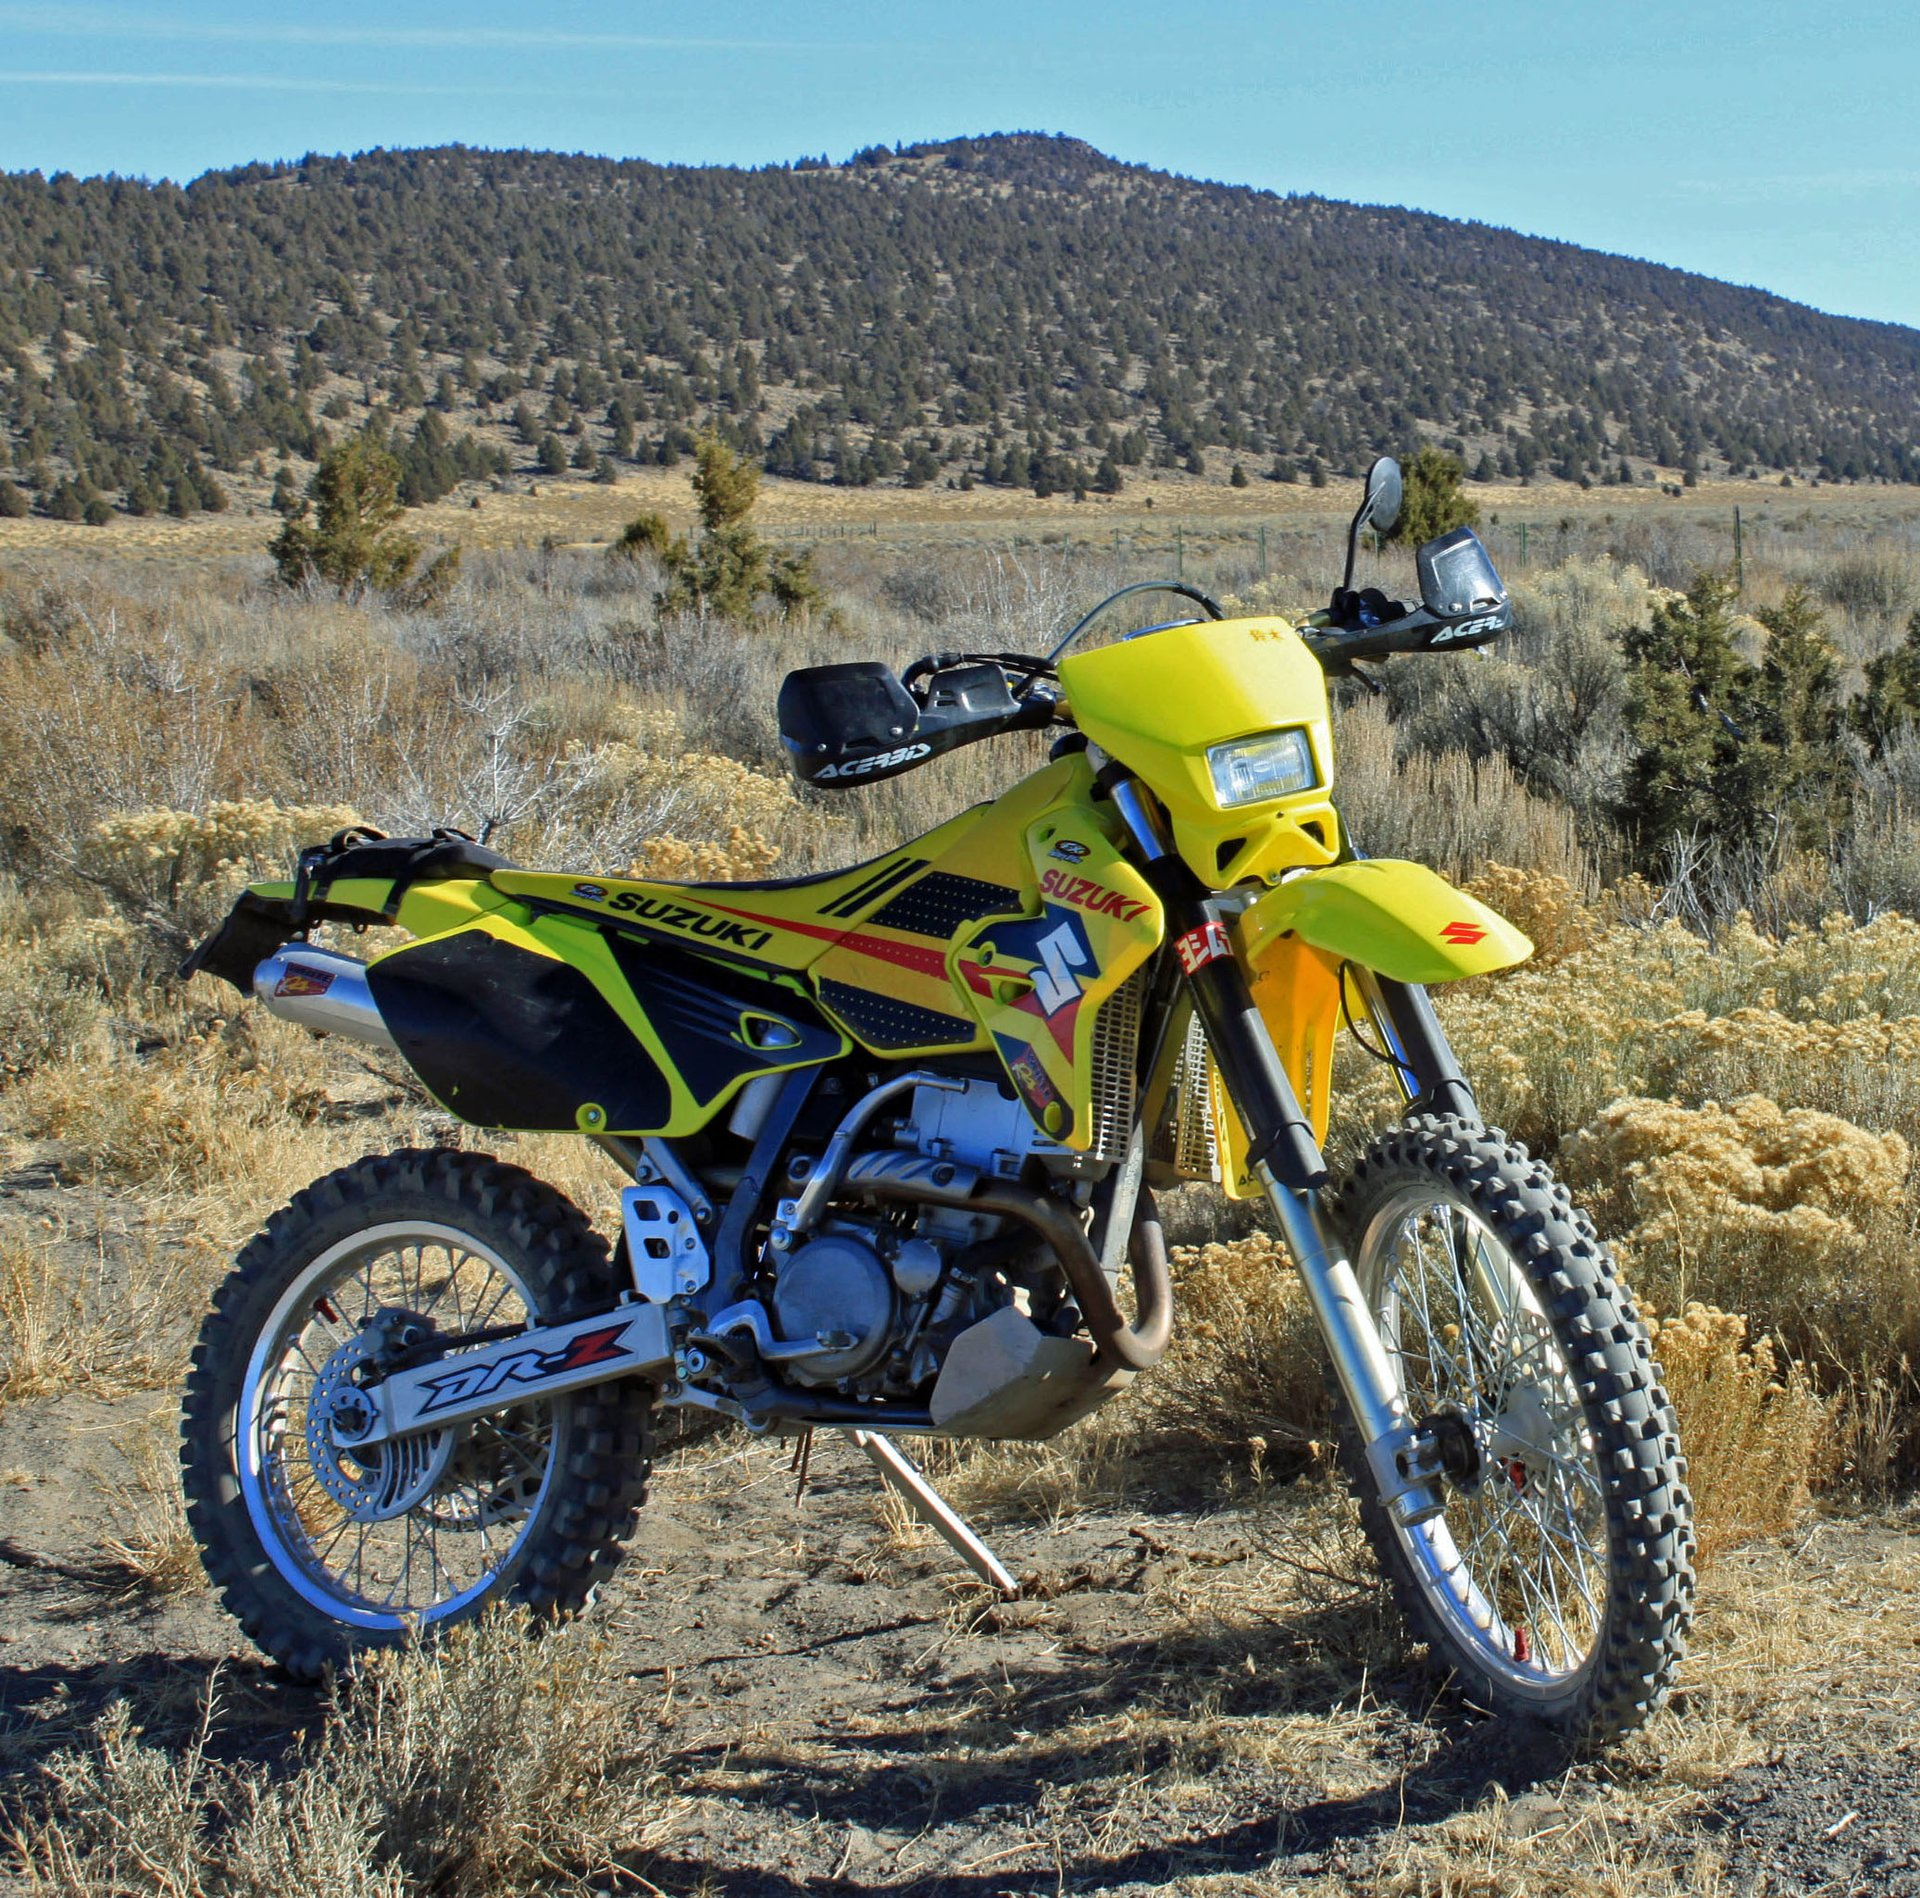 Suzuki Drz Dirt Bike